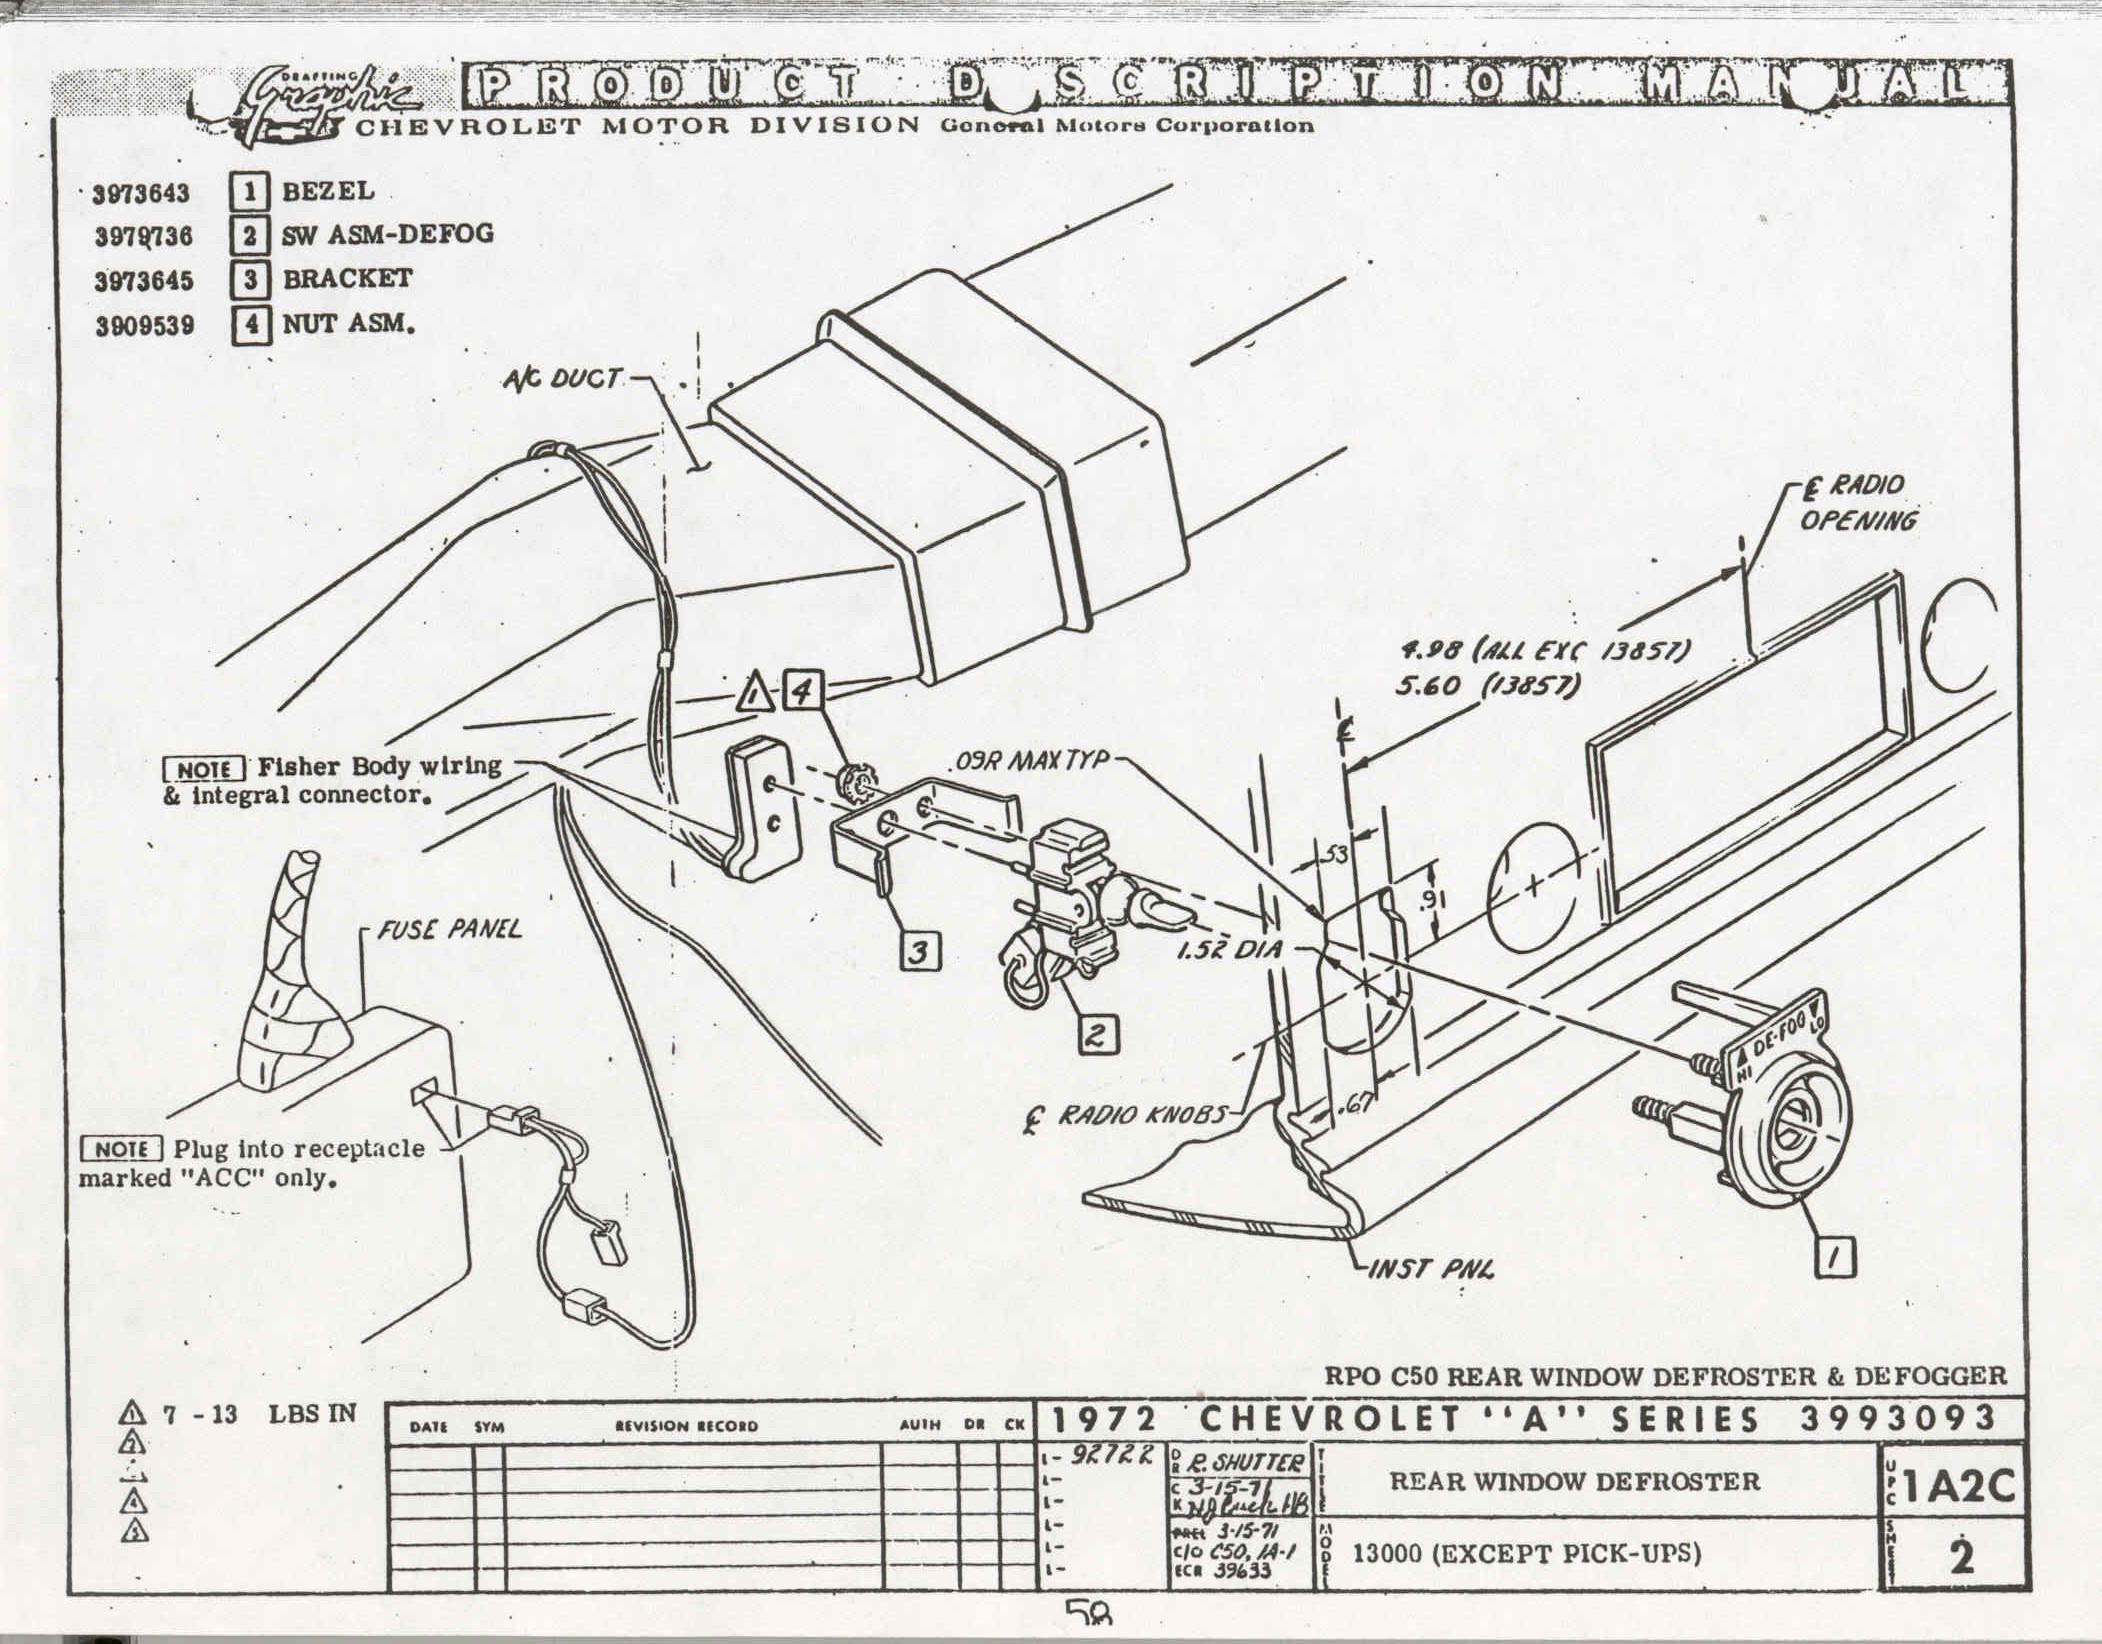 1971 Monte Carlo Ss Engine Diagram And Wiring Diagram